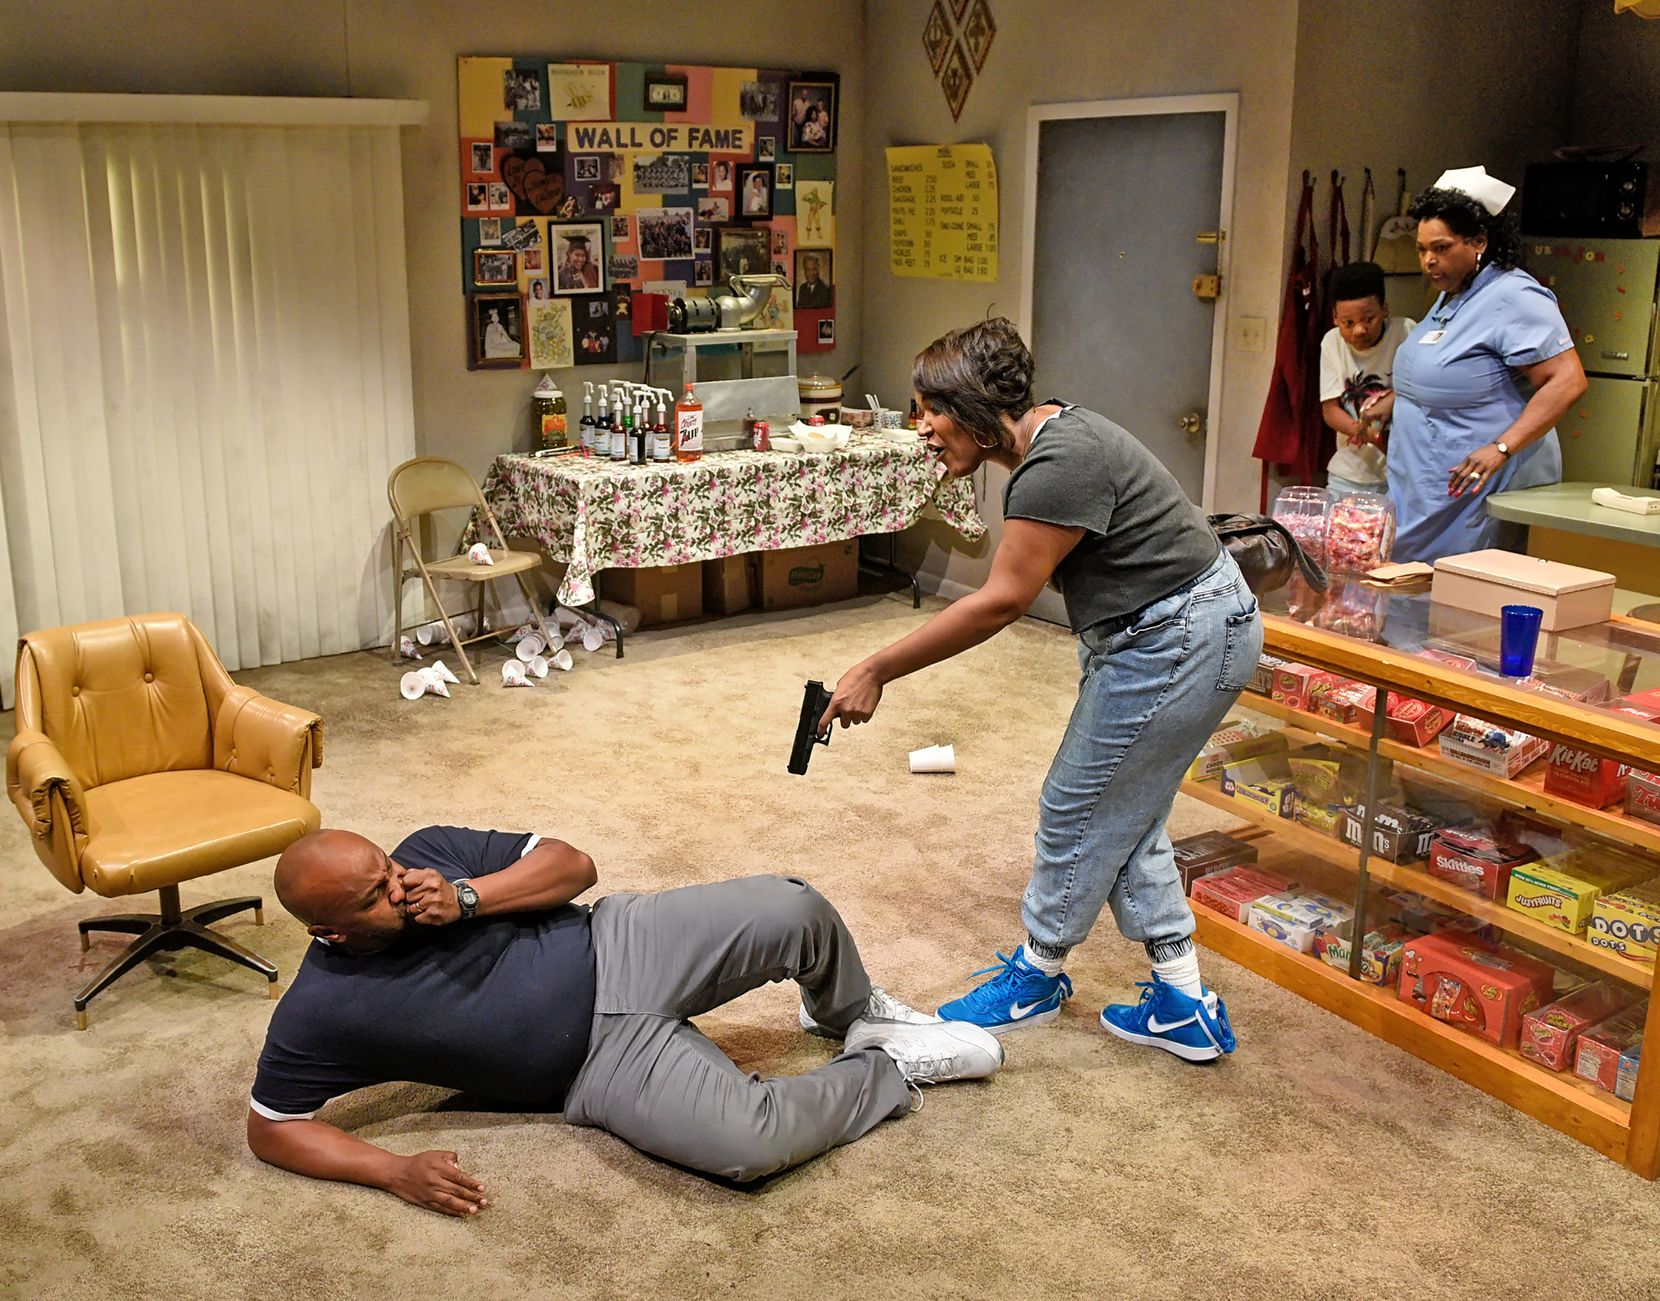 Rose (Claudia Logan, center) threatens neighbor Donnie (Jamal Sterling) as Jon-Jon (Esau Price) and Laura Mae (Liz Mikel) watch from the kitchen in Penny Candy.